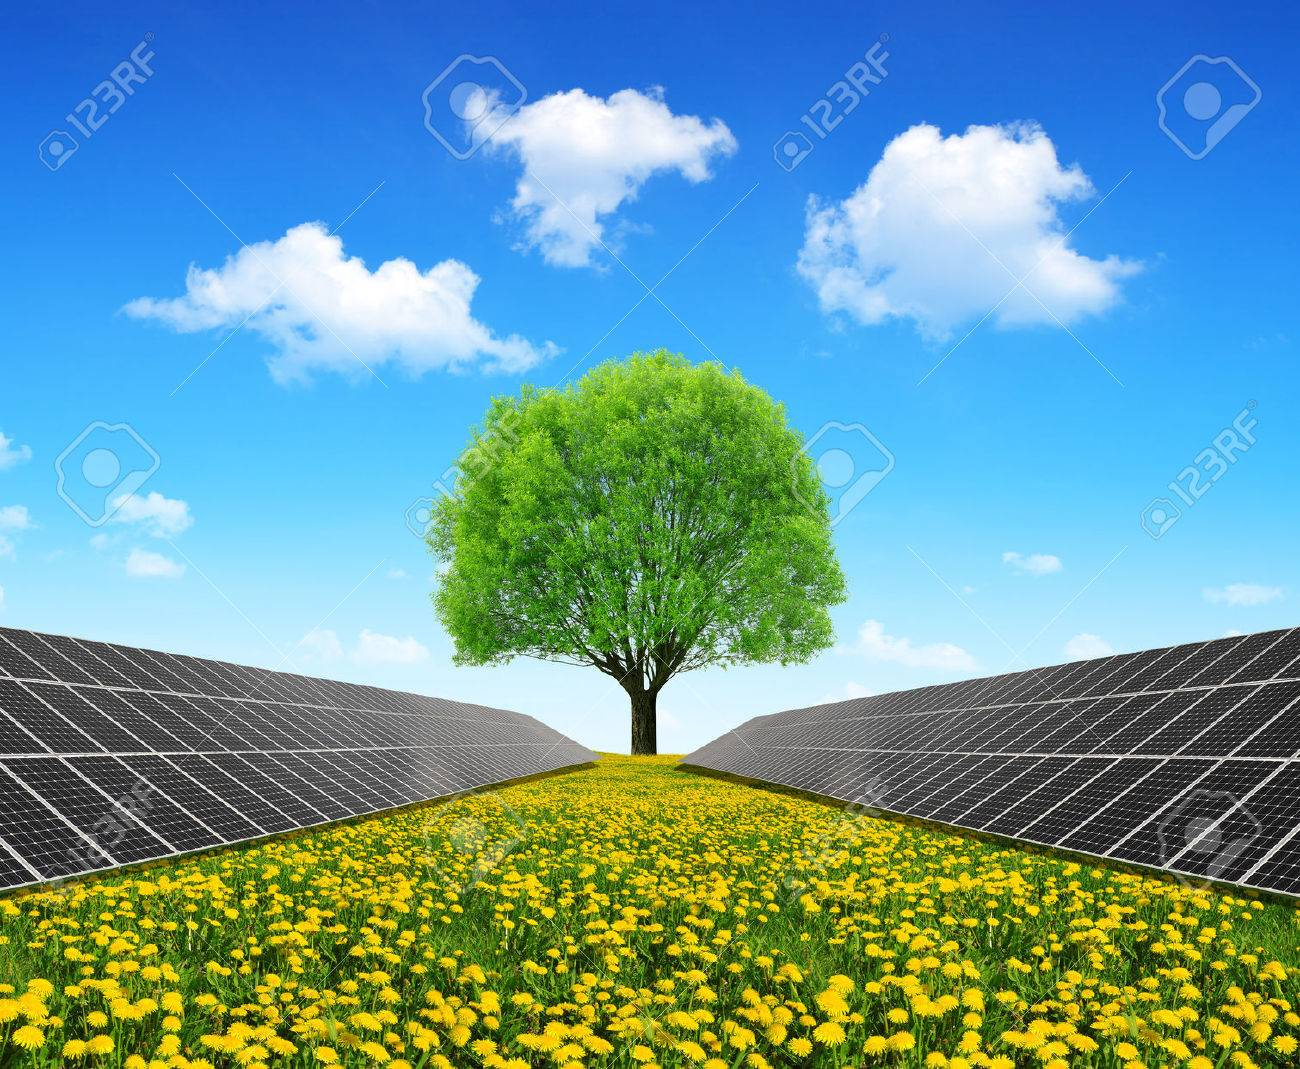 Solar energy panels and tree on dandelion field. Clean energy. - 49272450